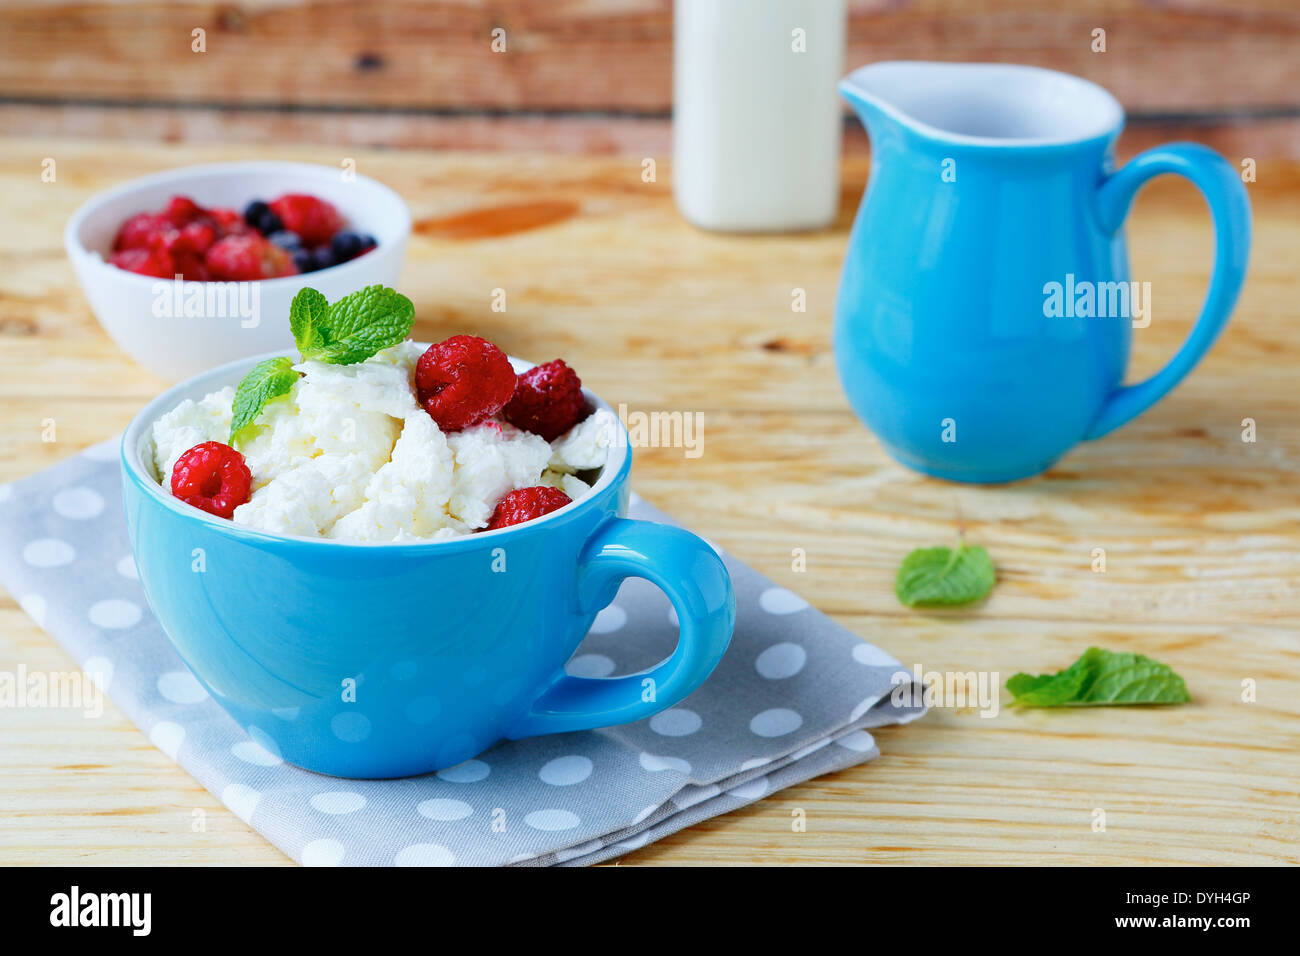 cup cottage cheese with berries, food closeup - Stock Image